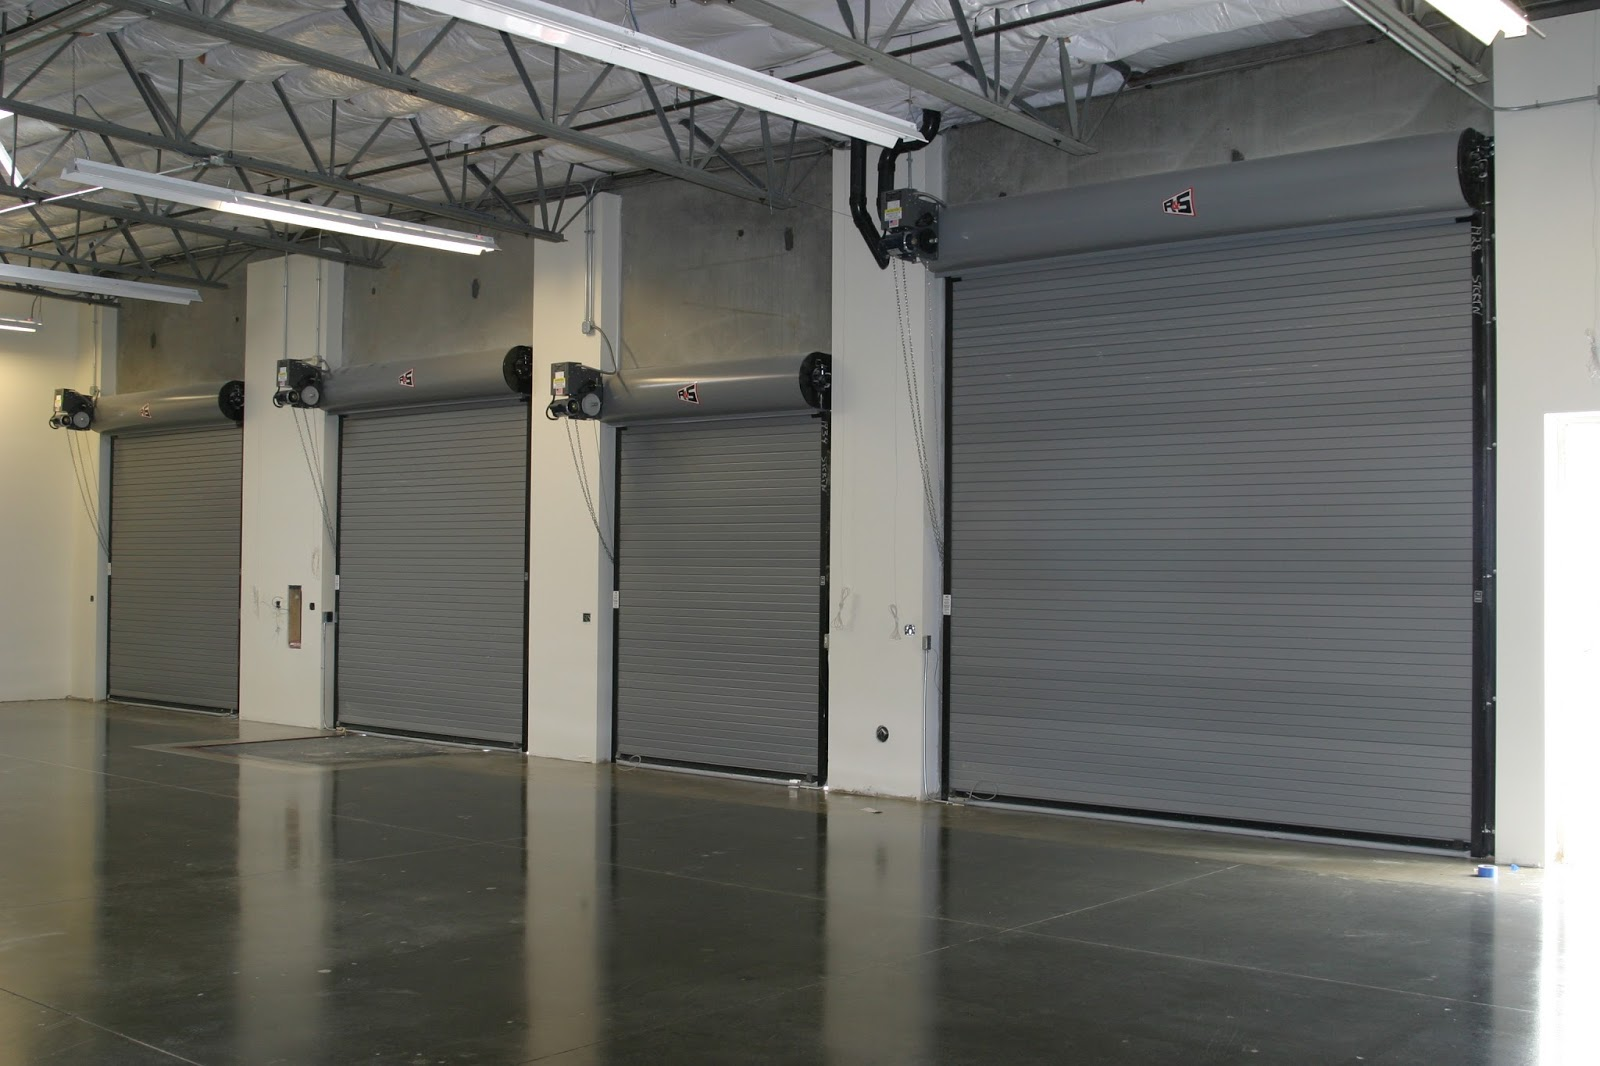 Industrial Doors & ACT Forklift: Industrial Doors - Tis the Season